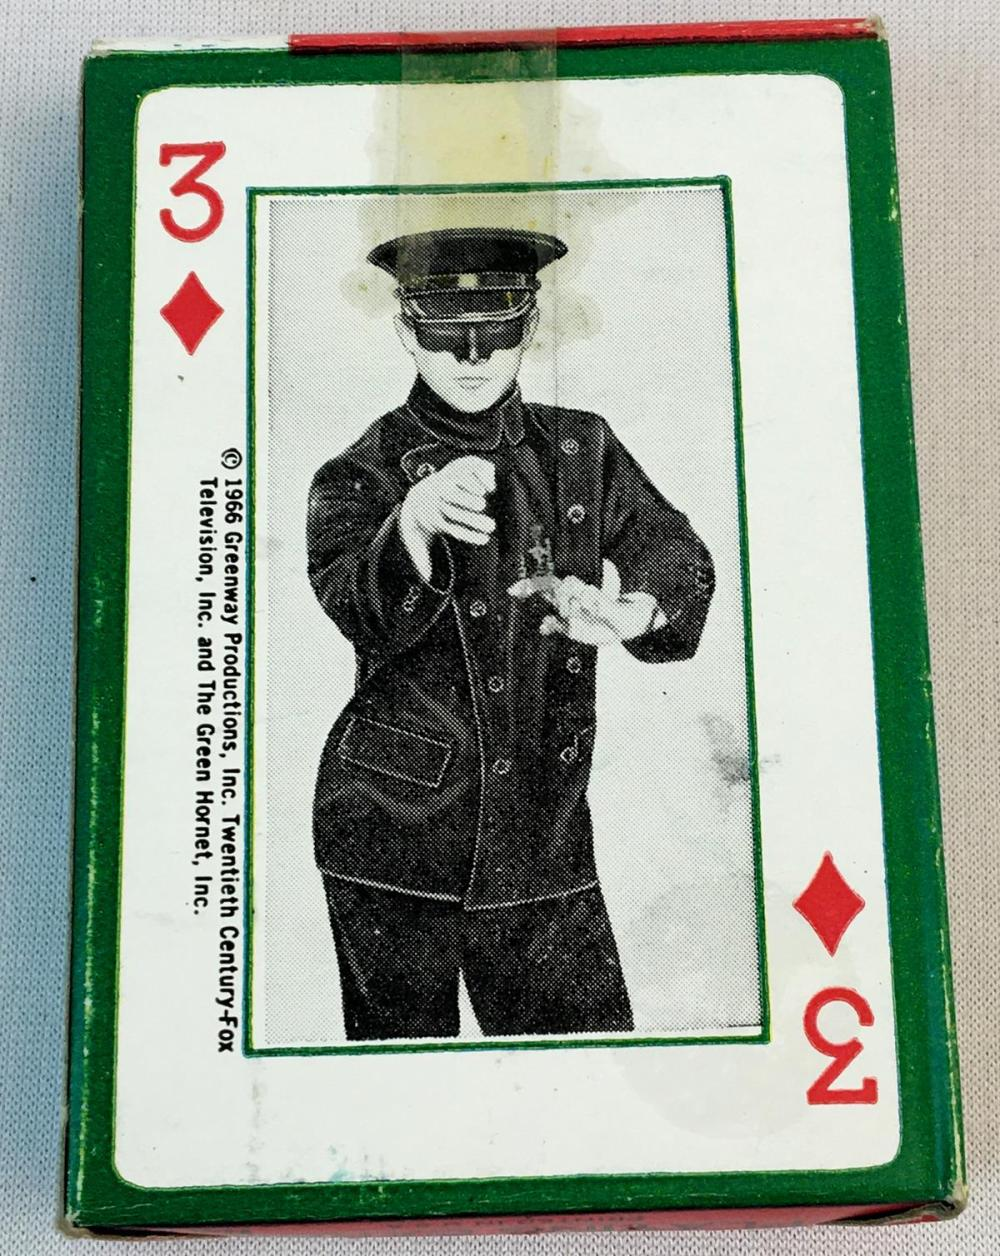 Vintage 1966 The Green Hornet Playing Cards UNOPENED